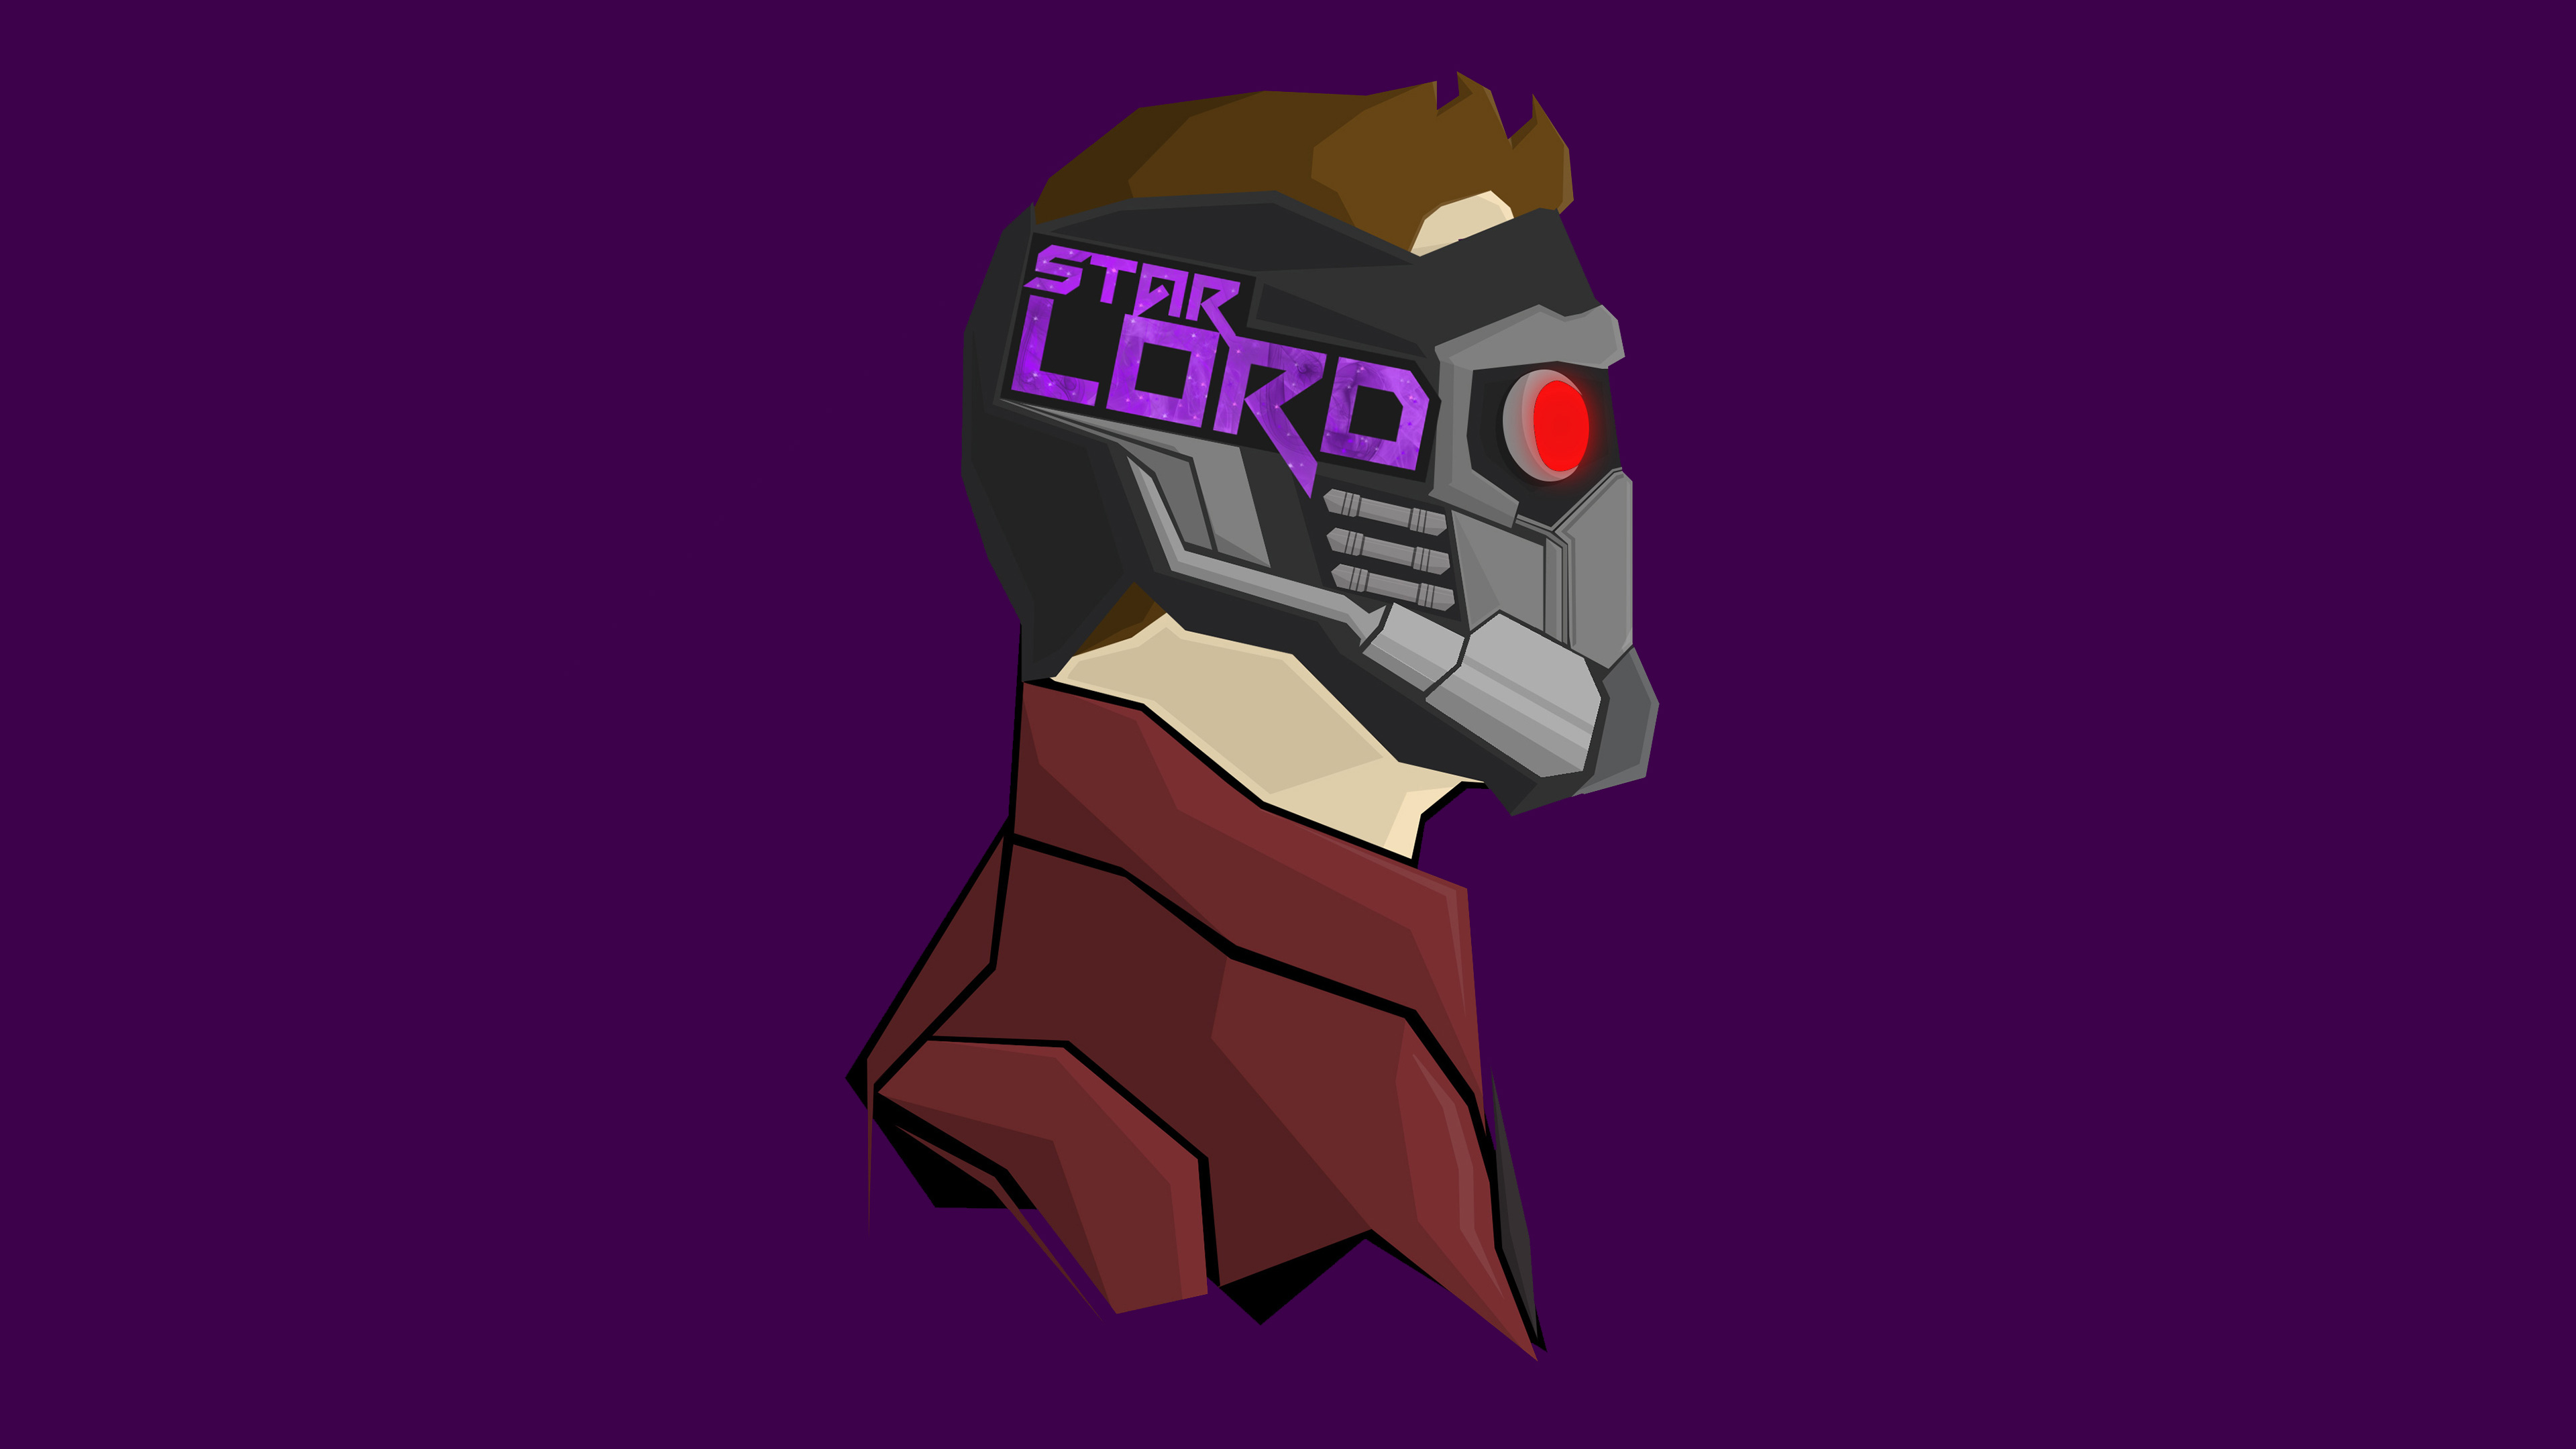 starlord pop head shot 1536521815 - StarLord Pop Head Shot - superheroes wallpapers, star lord wallpapers, hd-wallpapers, digital art wallpapers, deviantart wallpapers, artwork wallpapers, artstation wallpapers, artist wallpapers, 4k-wallpapers